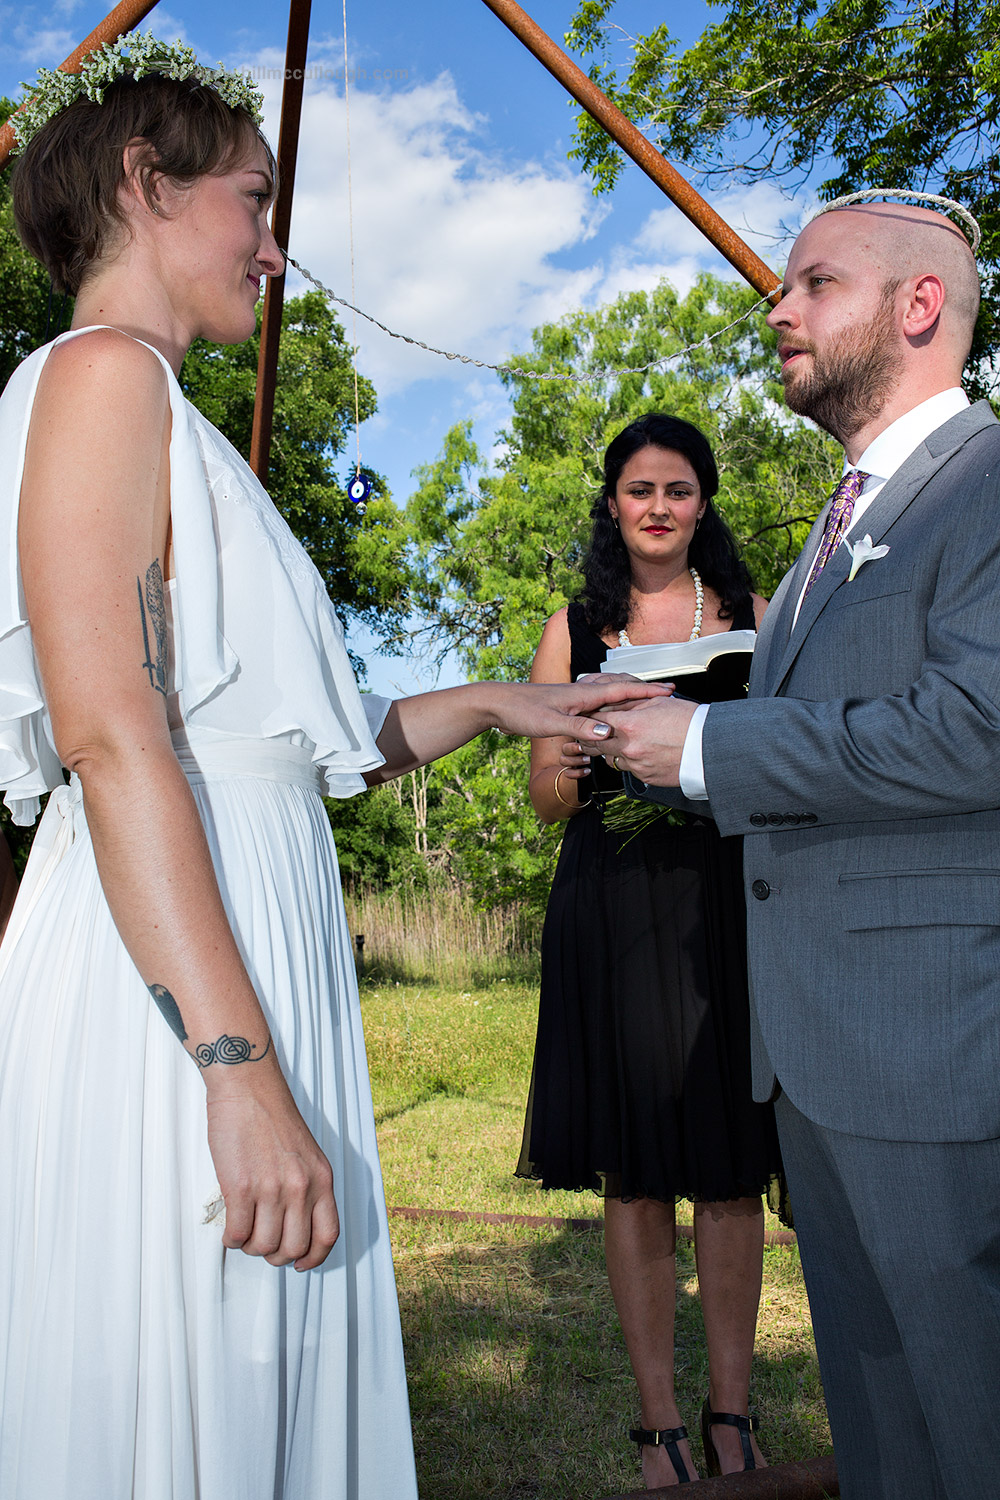 austin-backyard-wedding-150502-1619-59.jpg